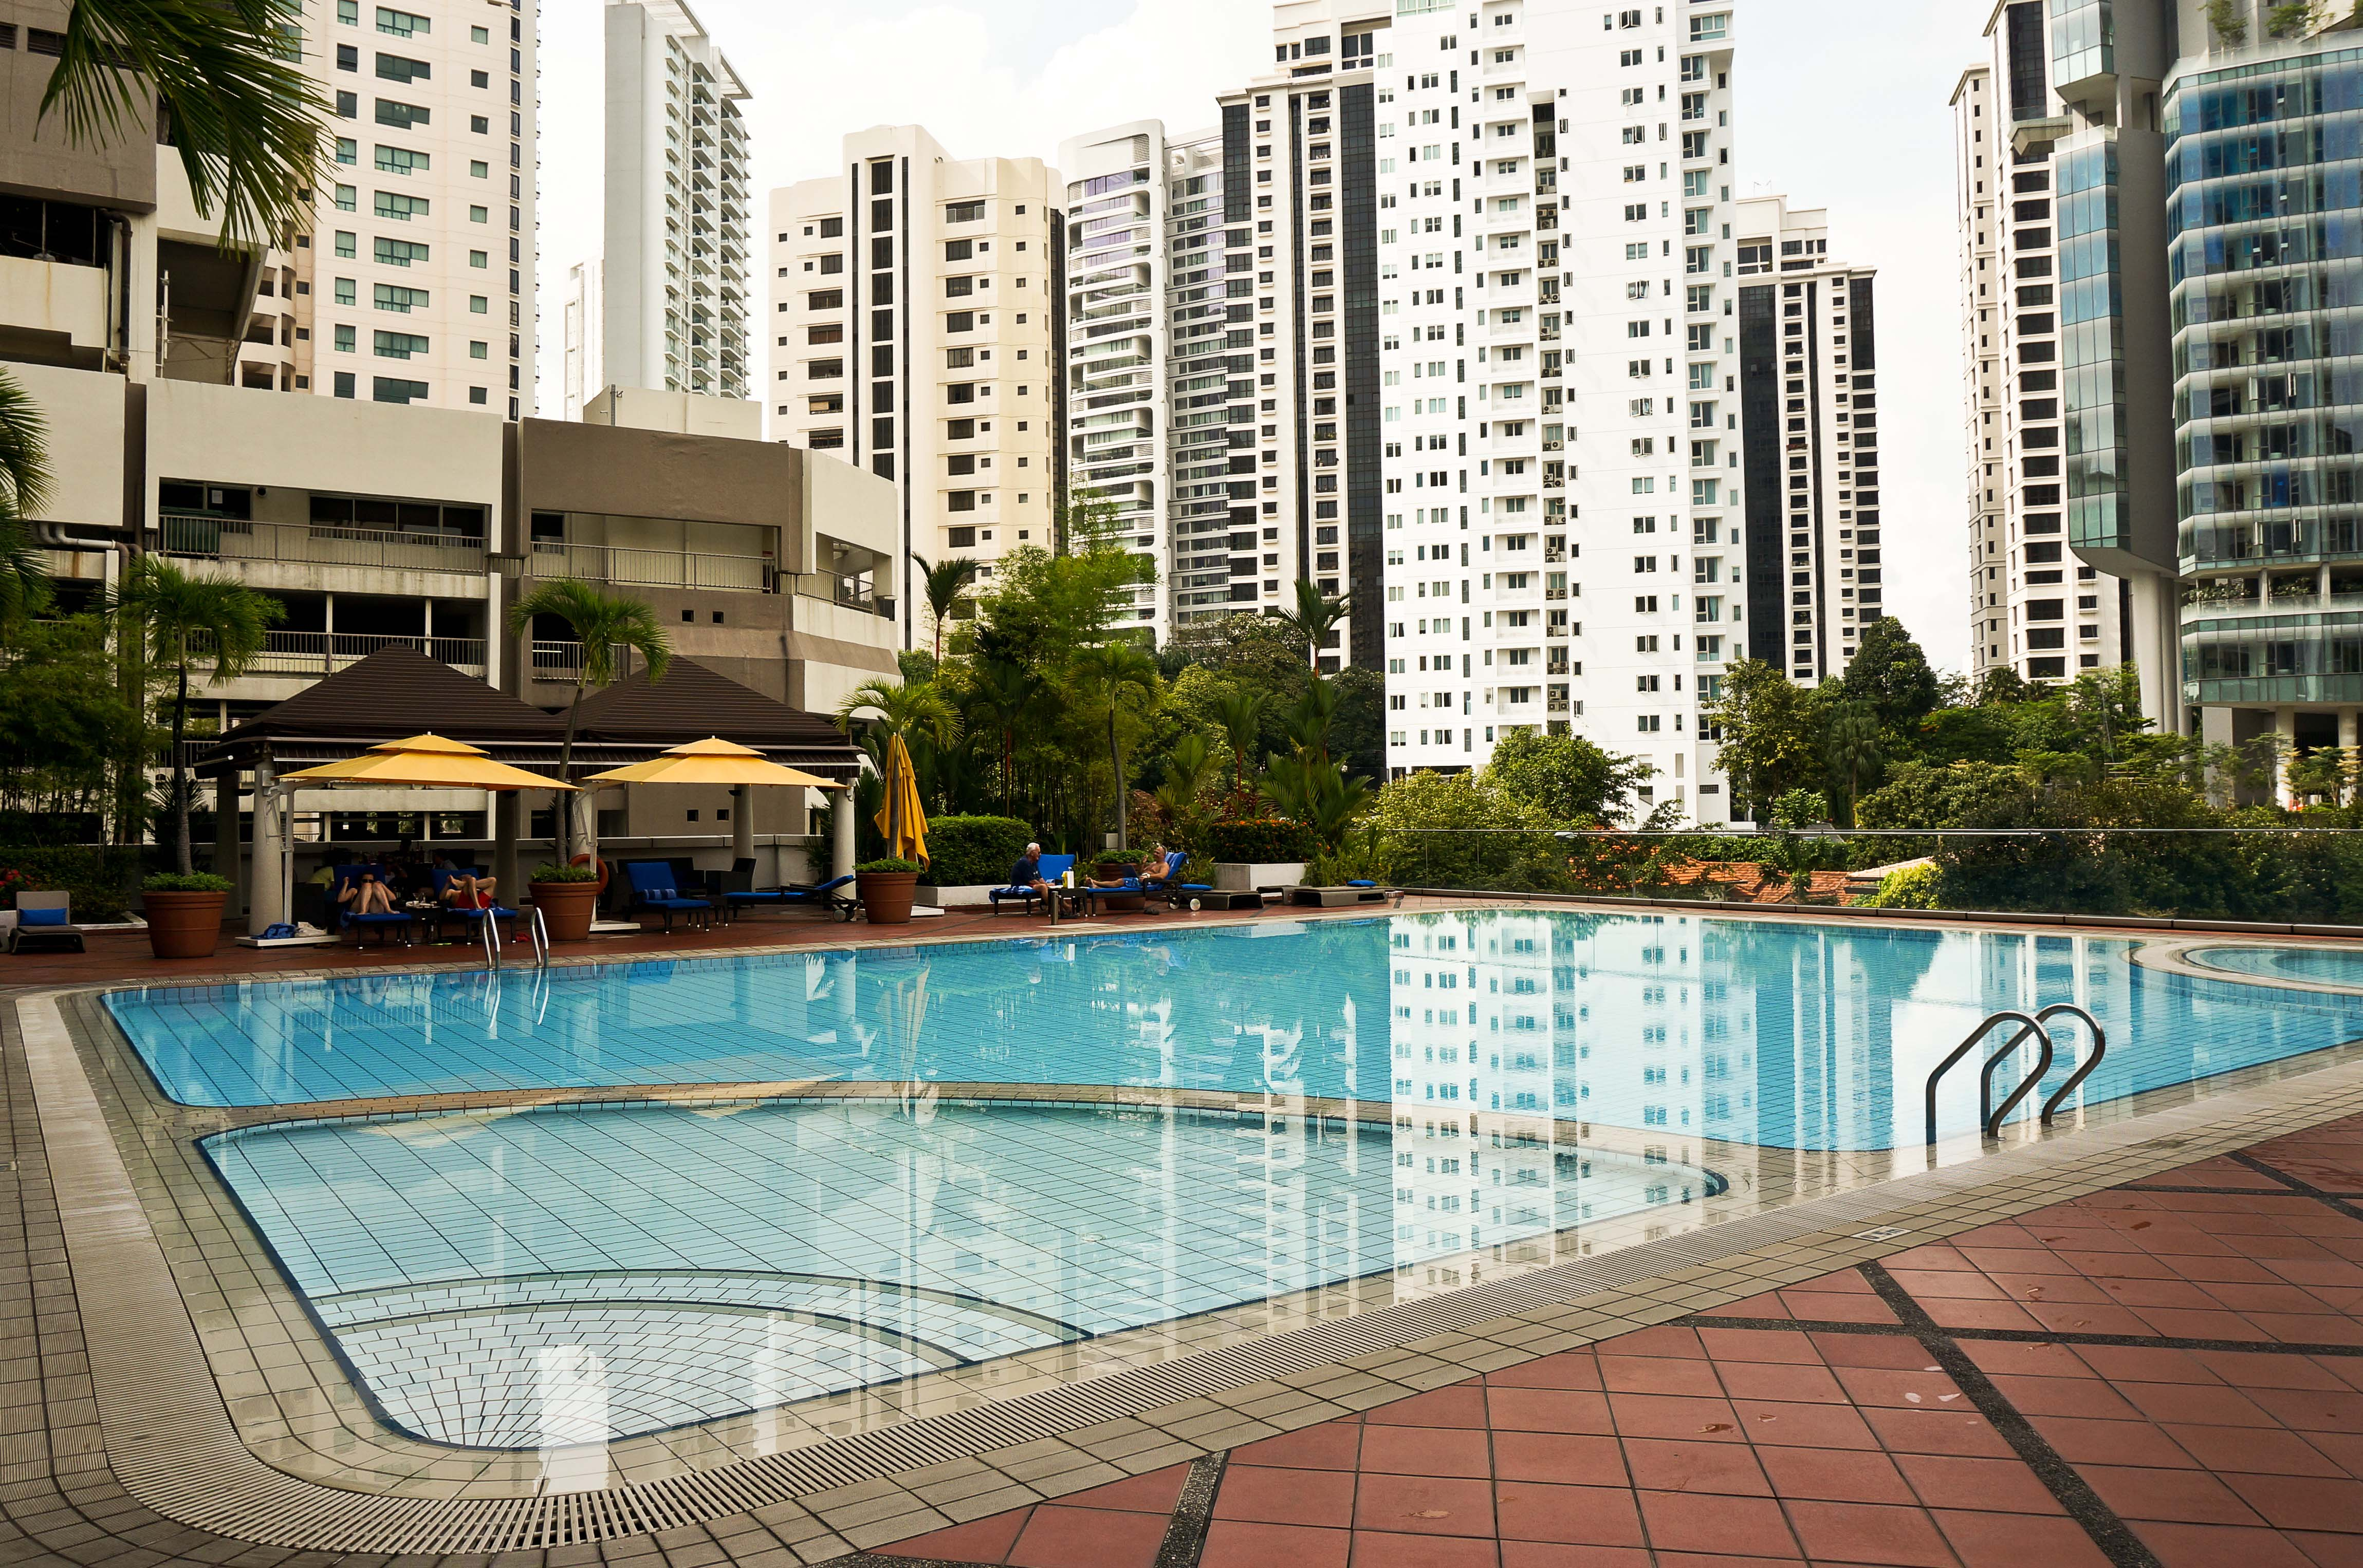 Our pan pacific orchard singapore staycation we swam in - Swimming pool supply stores near me ...